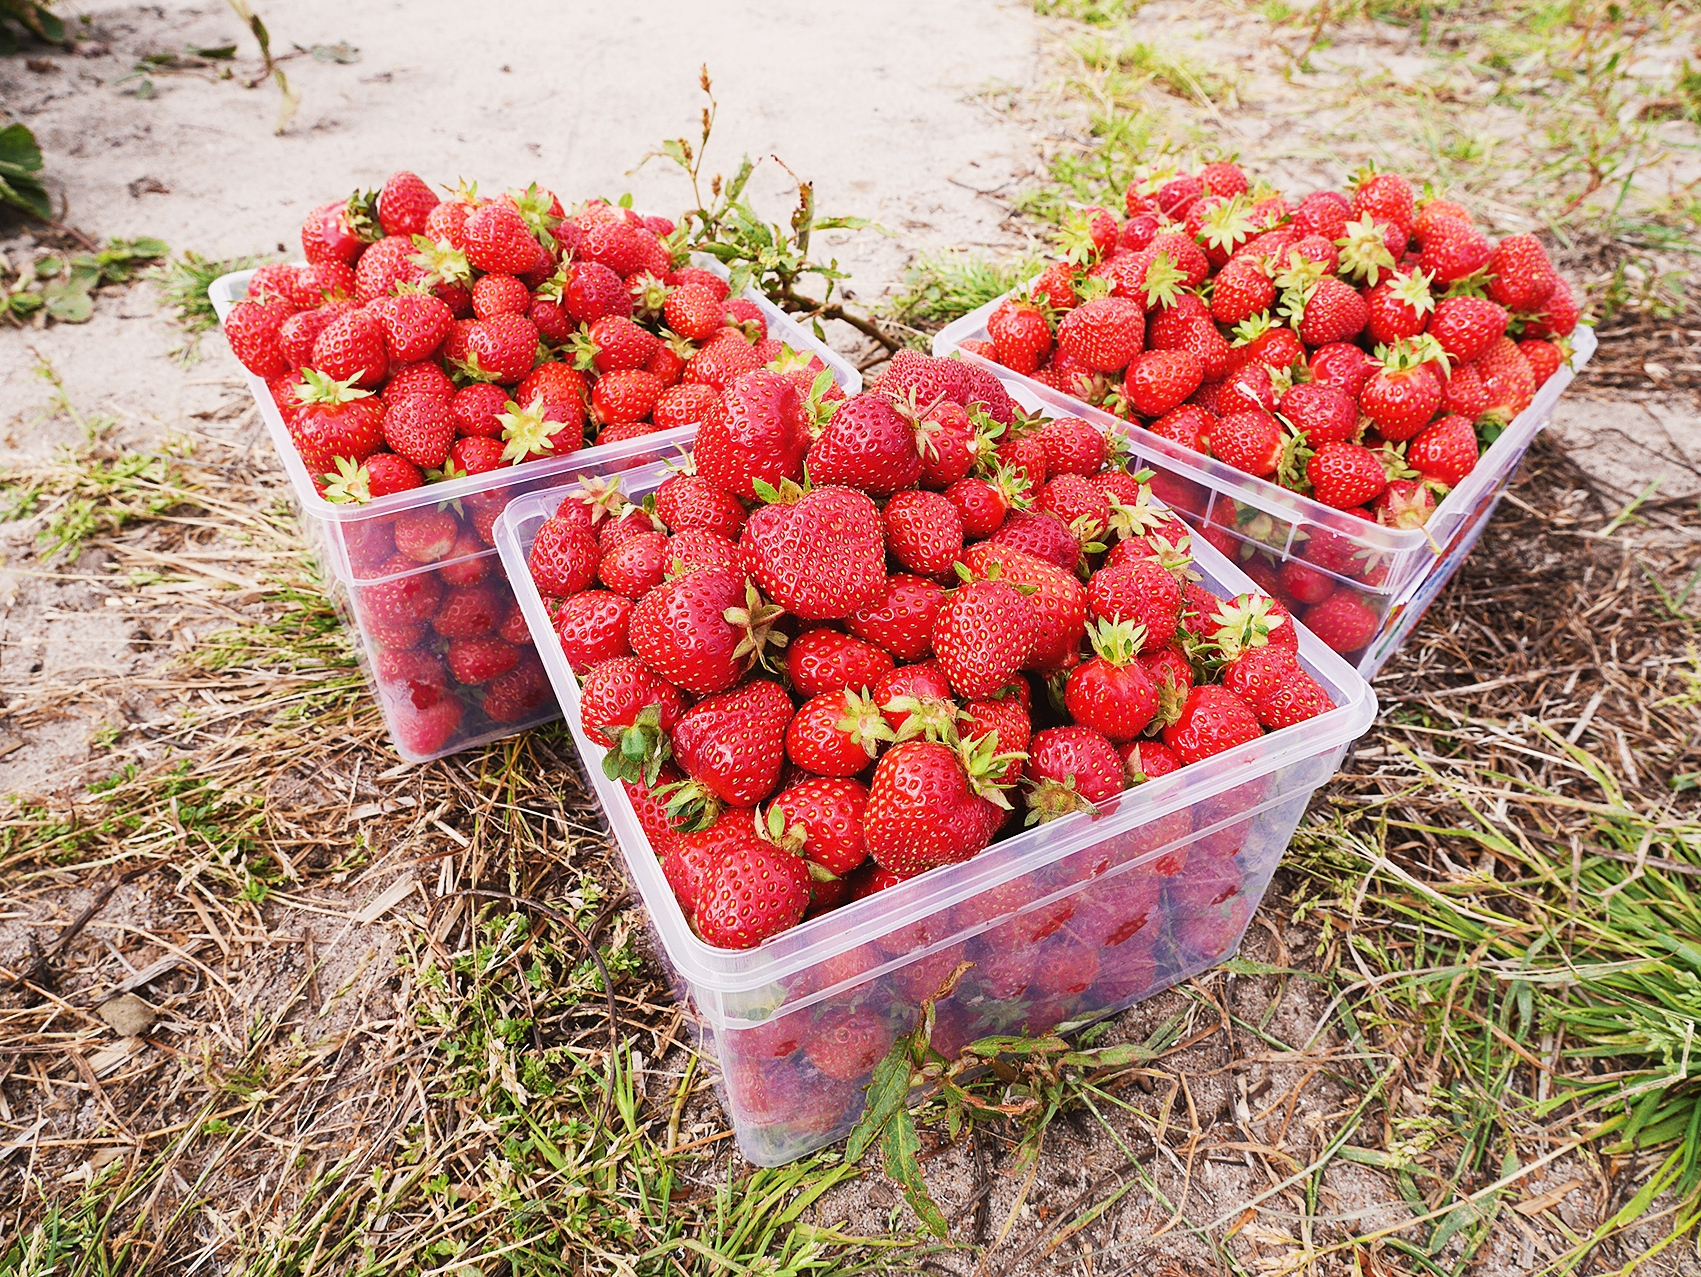 Four Best Places To Pick Strawberries In South Carolina